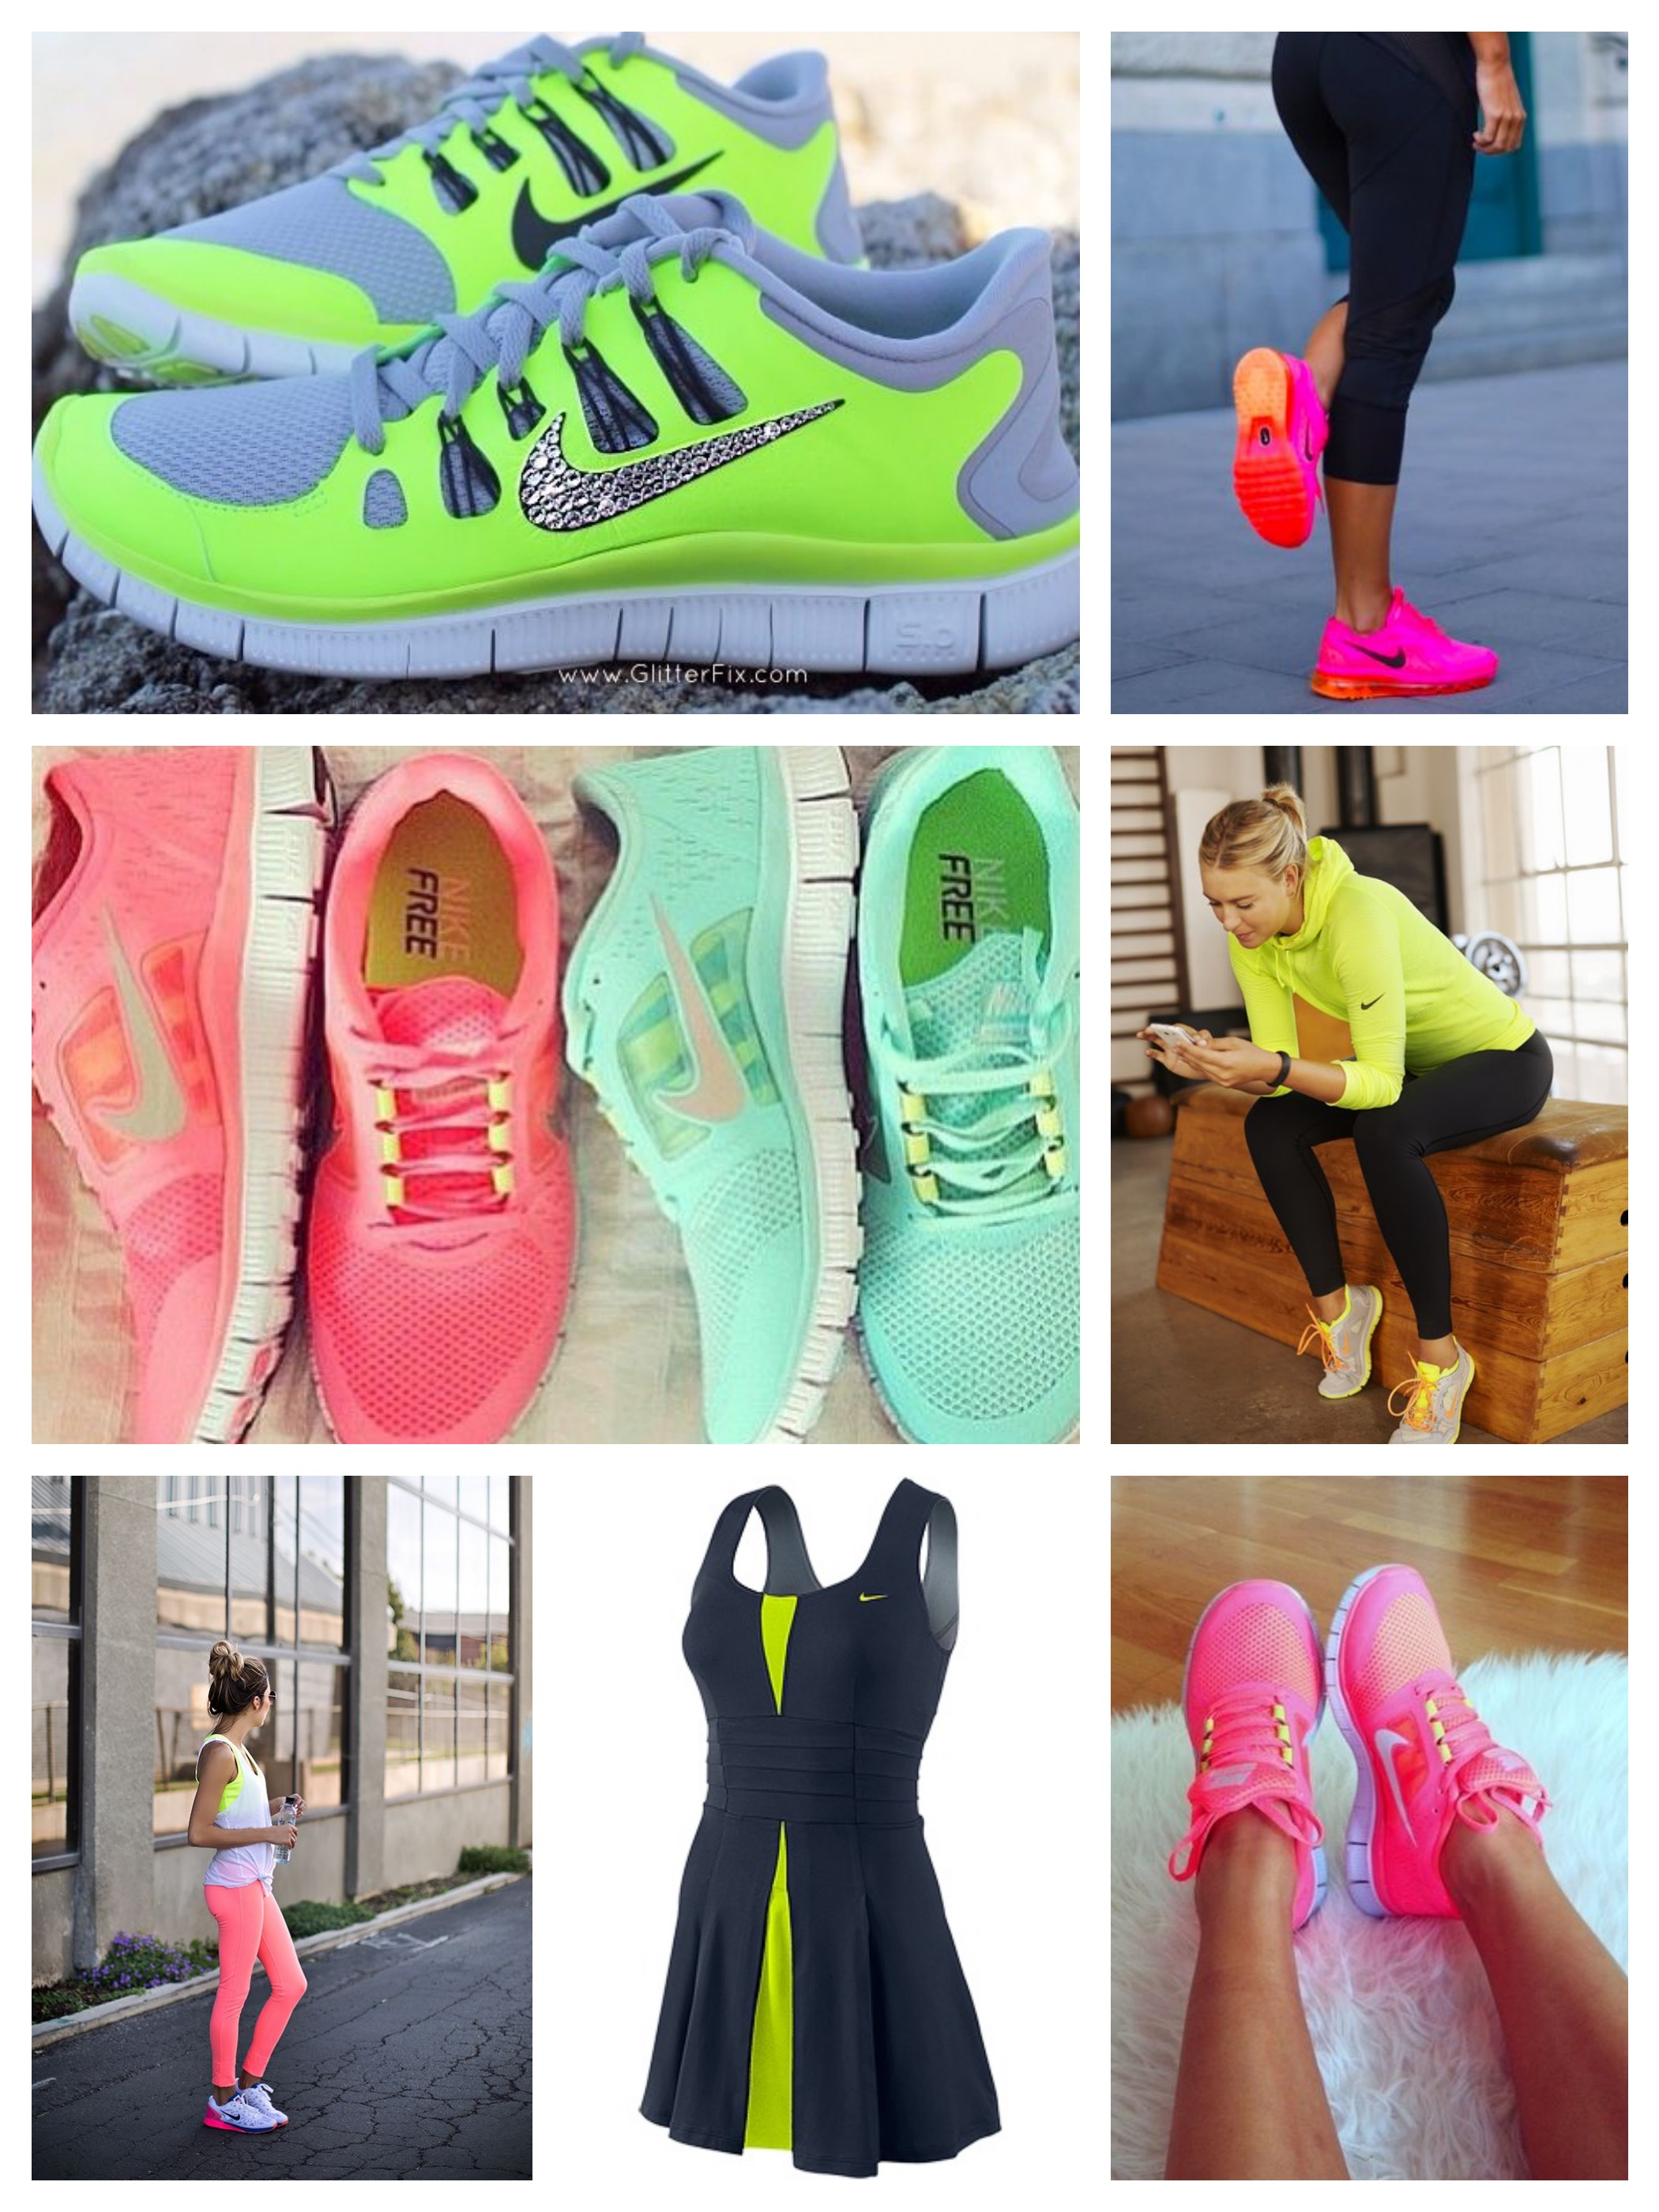 Neon trend for working out outfits